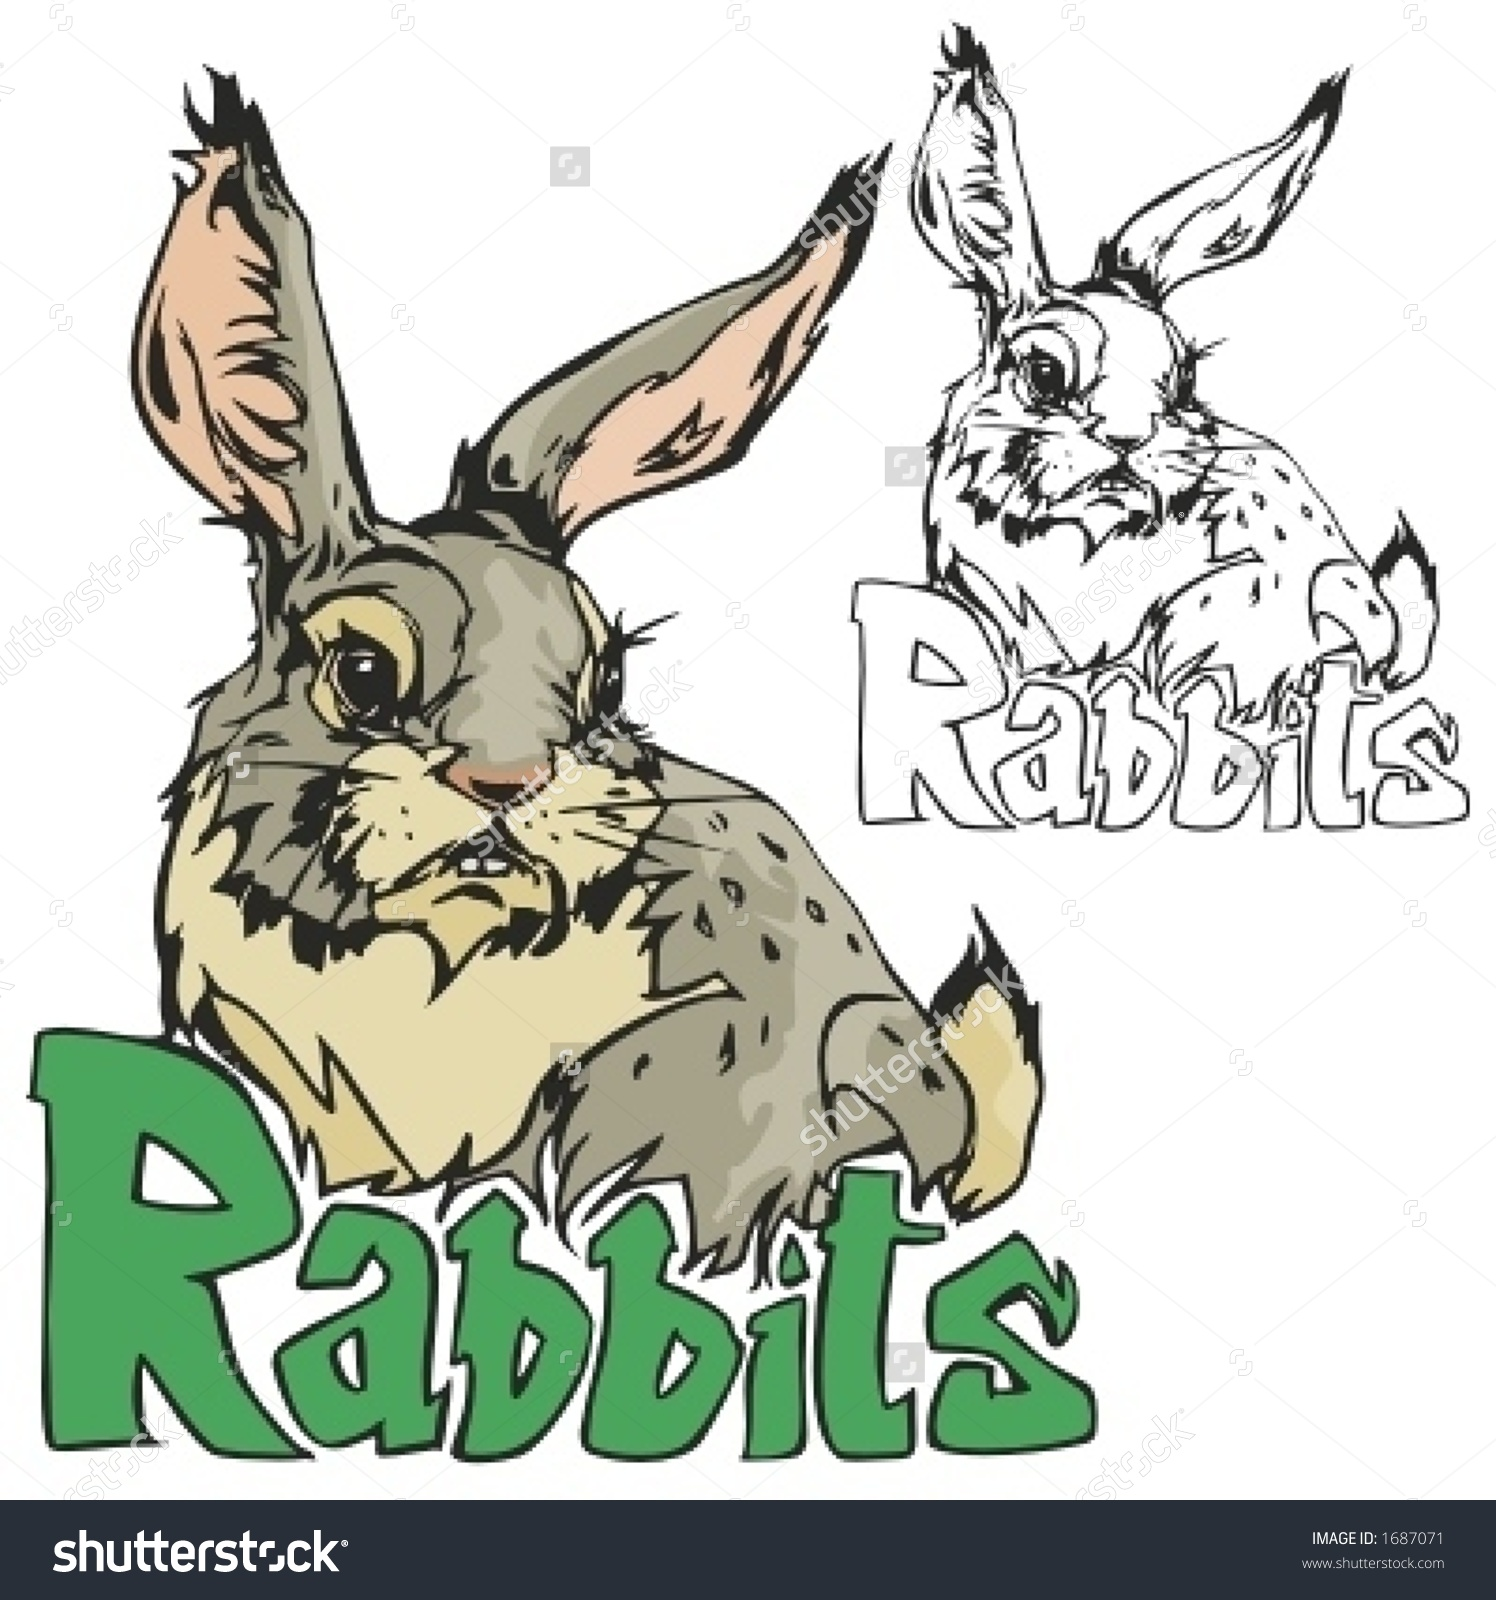 Rabbit Mascot For Sport Teams. Great For T.